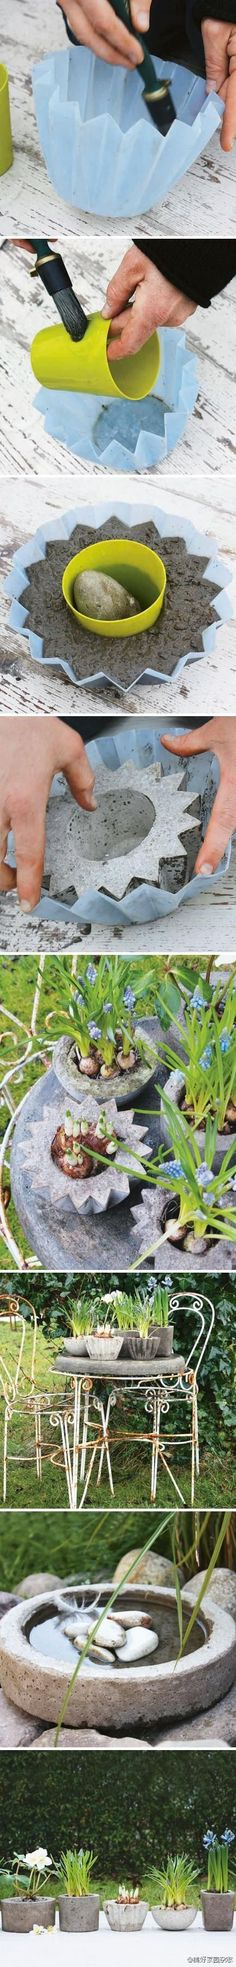 DIY Concrete Planters Pictures, Photos, and Images for Facebook, Tumblr, Pinterest, and Twitter